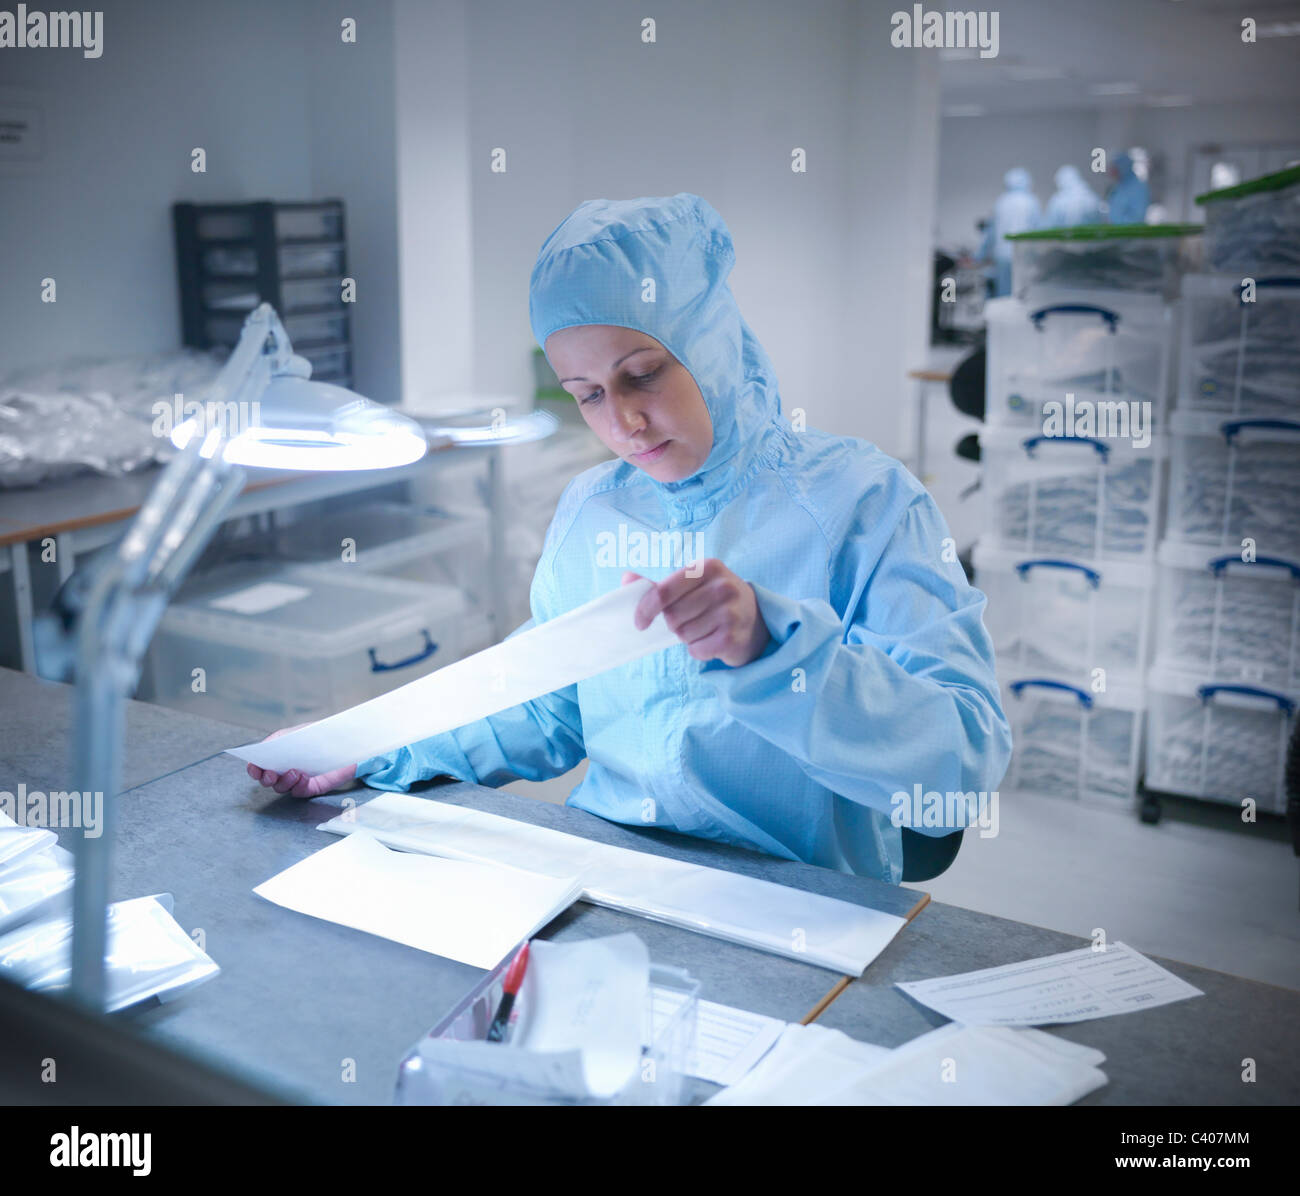 Scientist in clean room with product - Stock Image